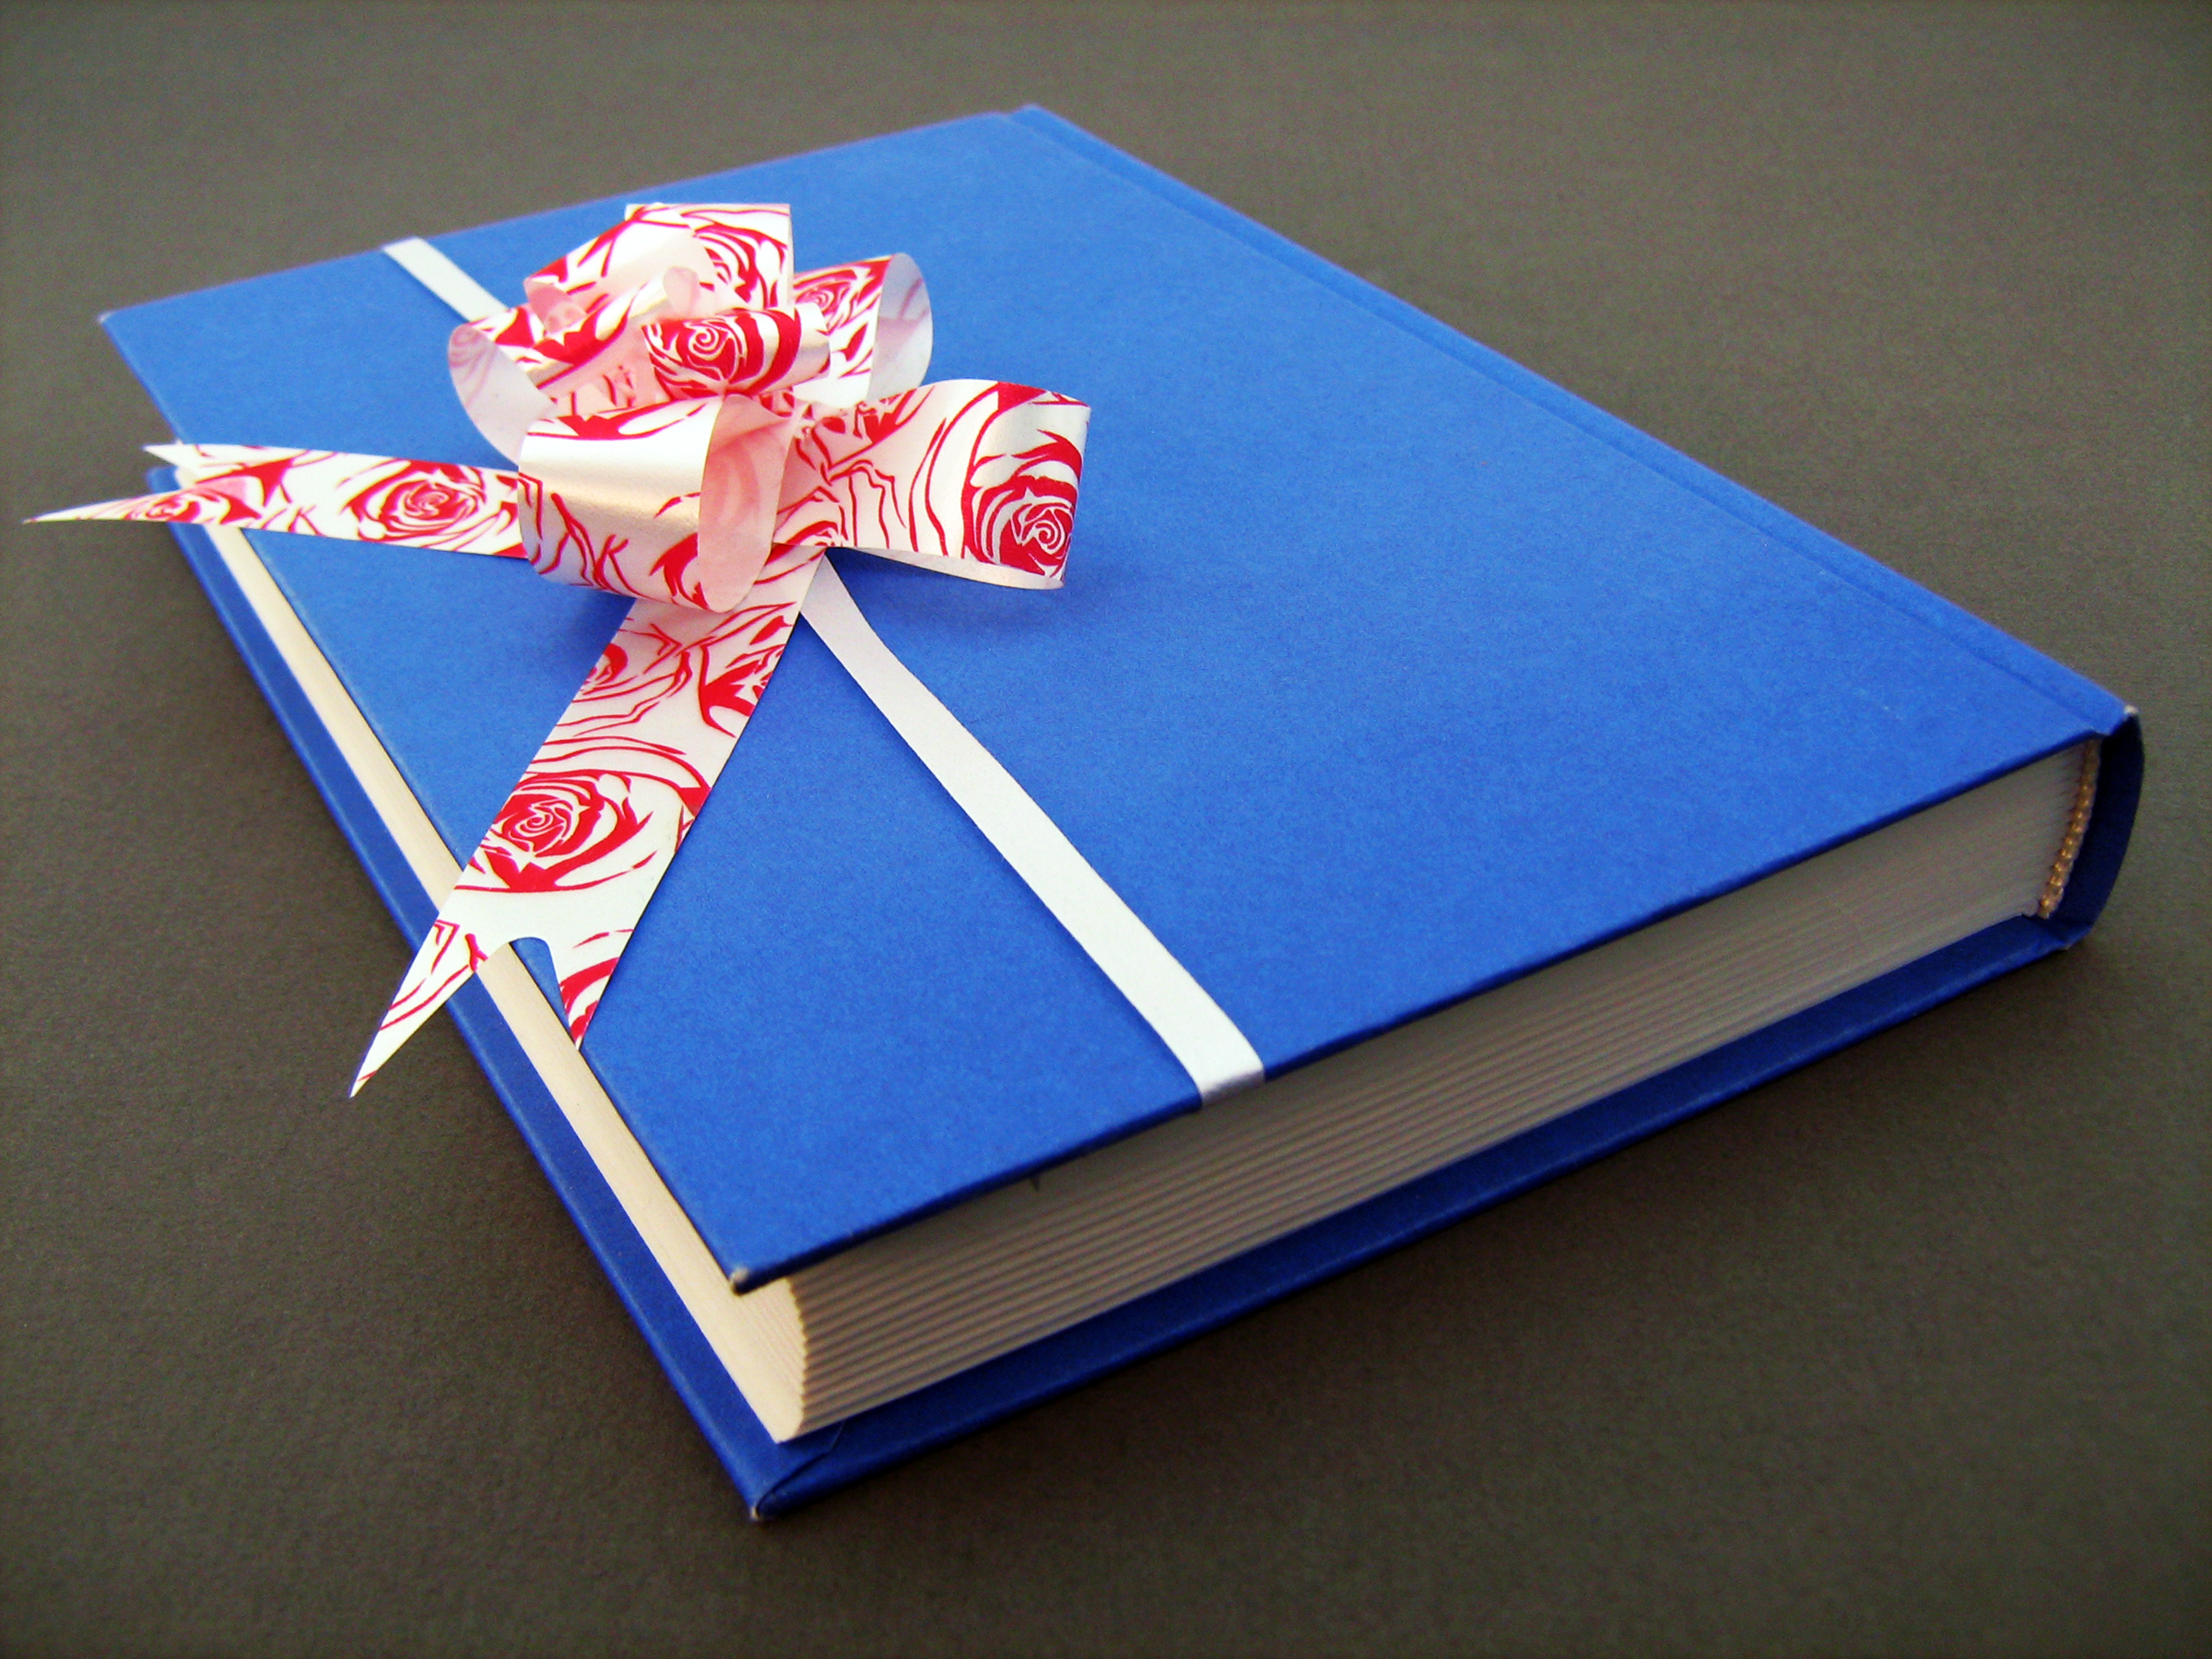 Blue book with bow, Present, Ribbon, Red, Literacy, HQ Photo